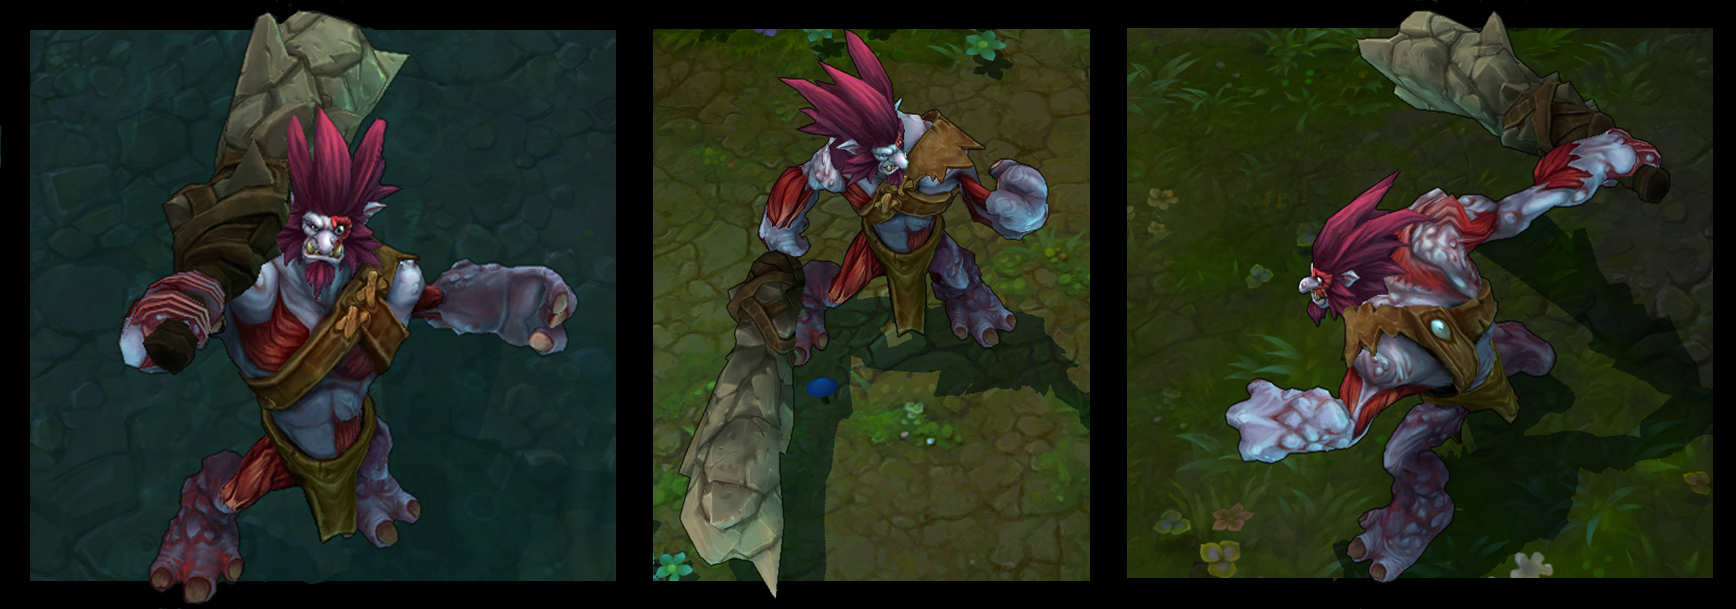 trundle rework_1